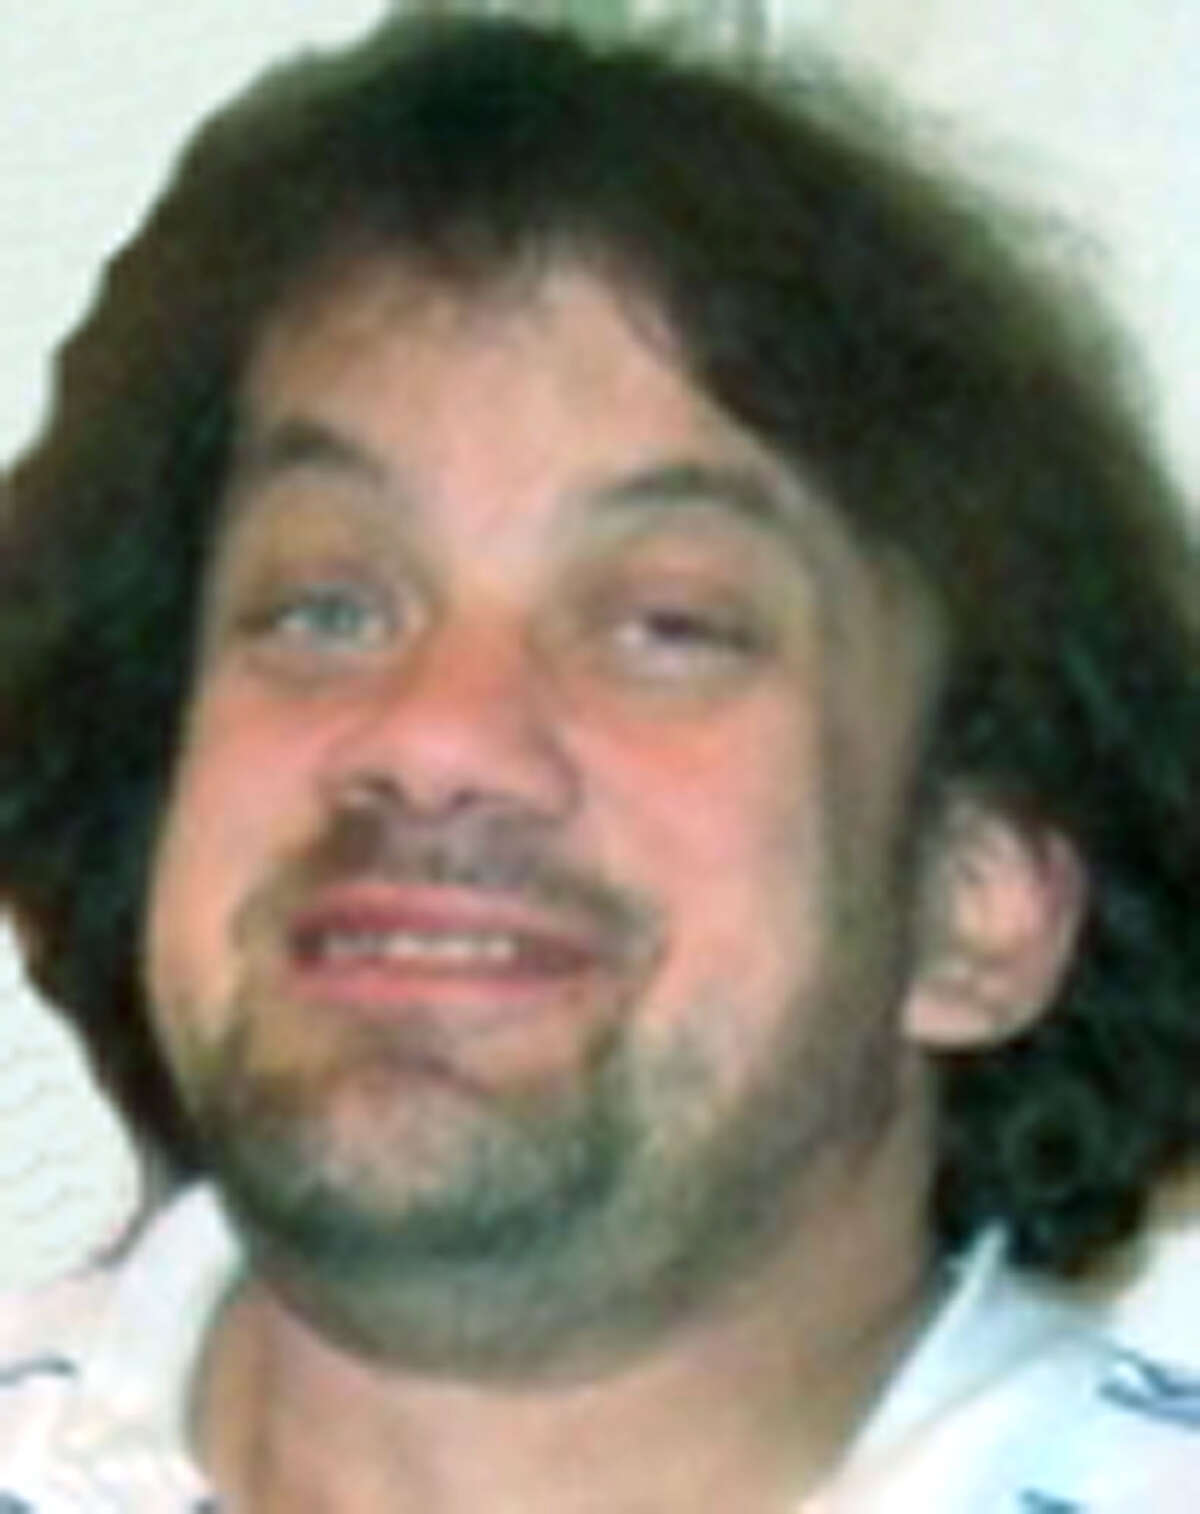 Allen Anthony Perkowski, 44, died Jan. 13, 2013, at his home in Southbury. Mr. Perkowski was born Sept. 28, 1968, in Stamford, where he resided until he relocated to Southbury in 1984.